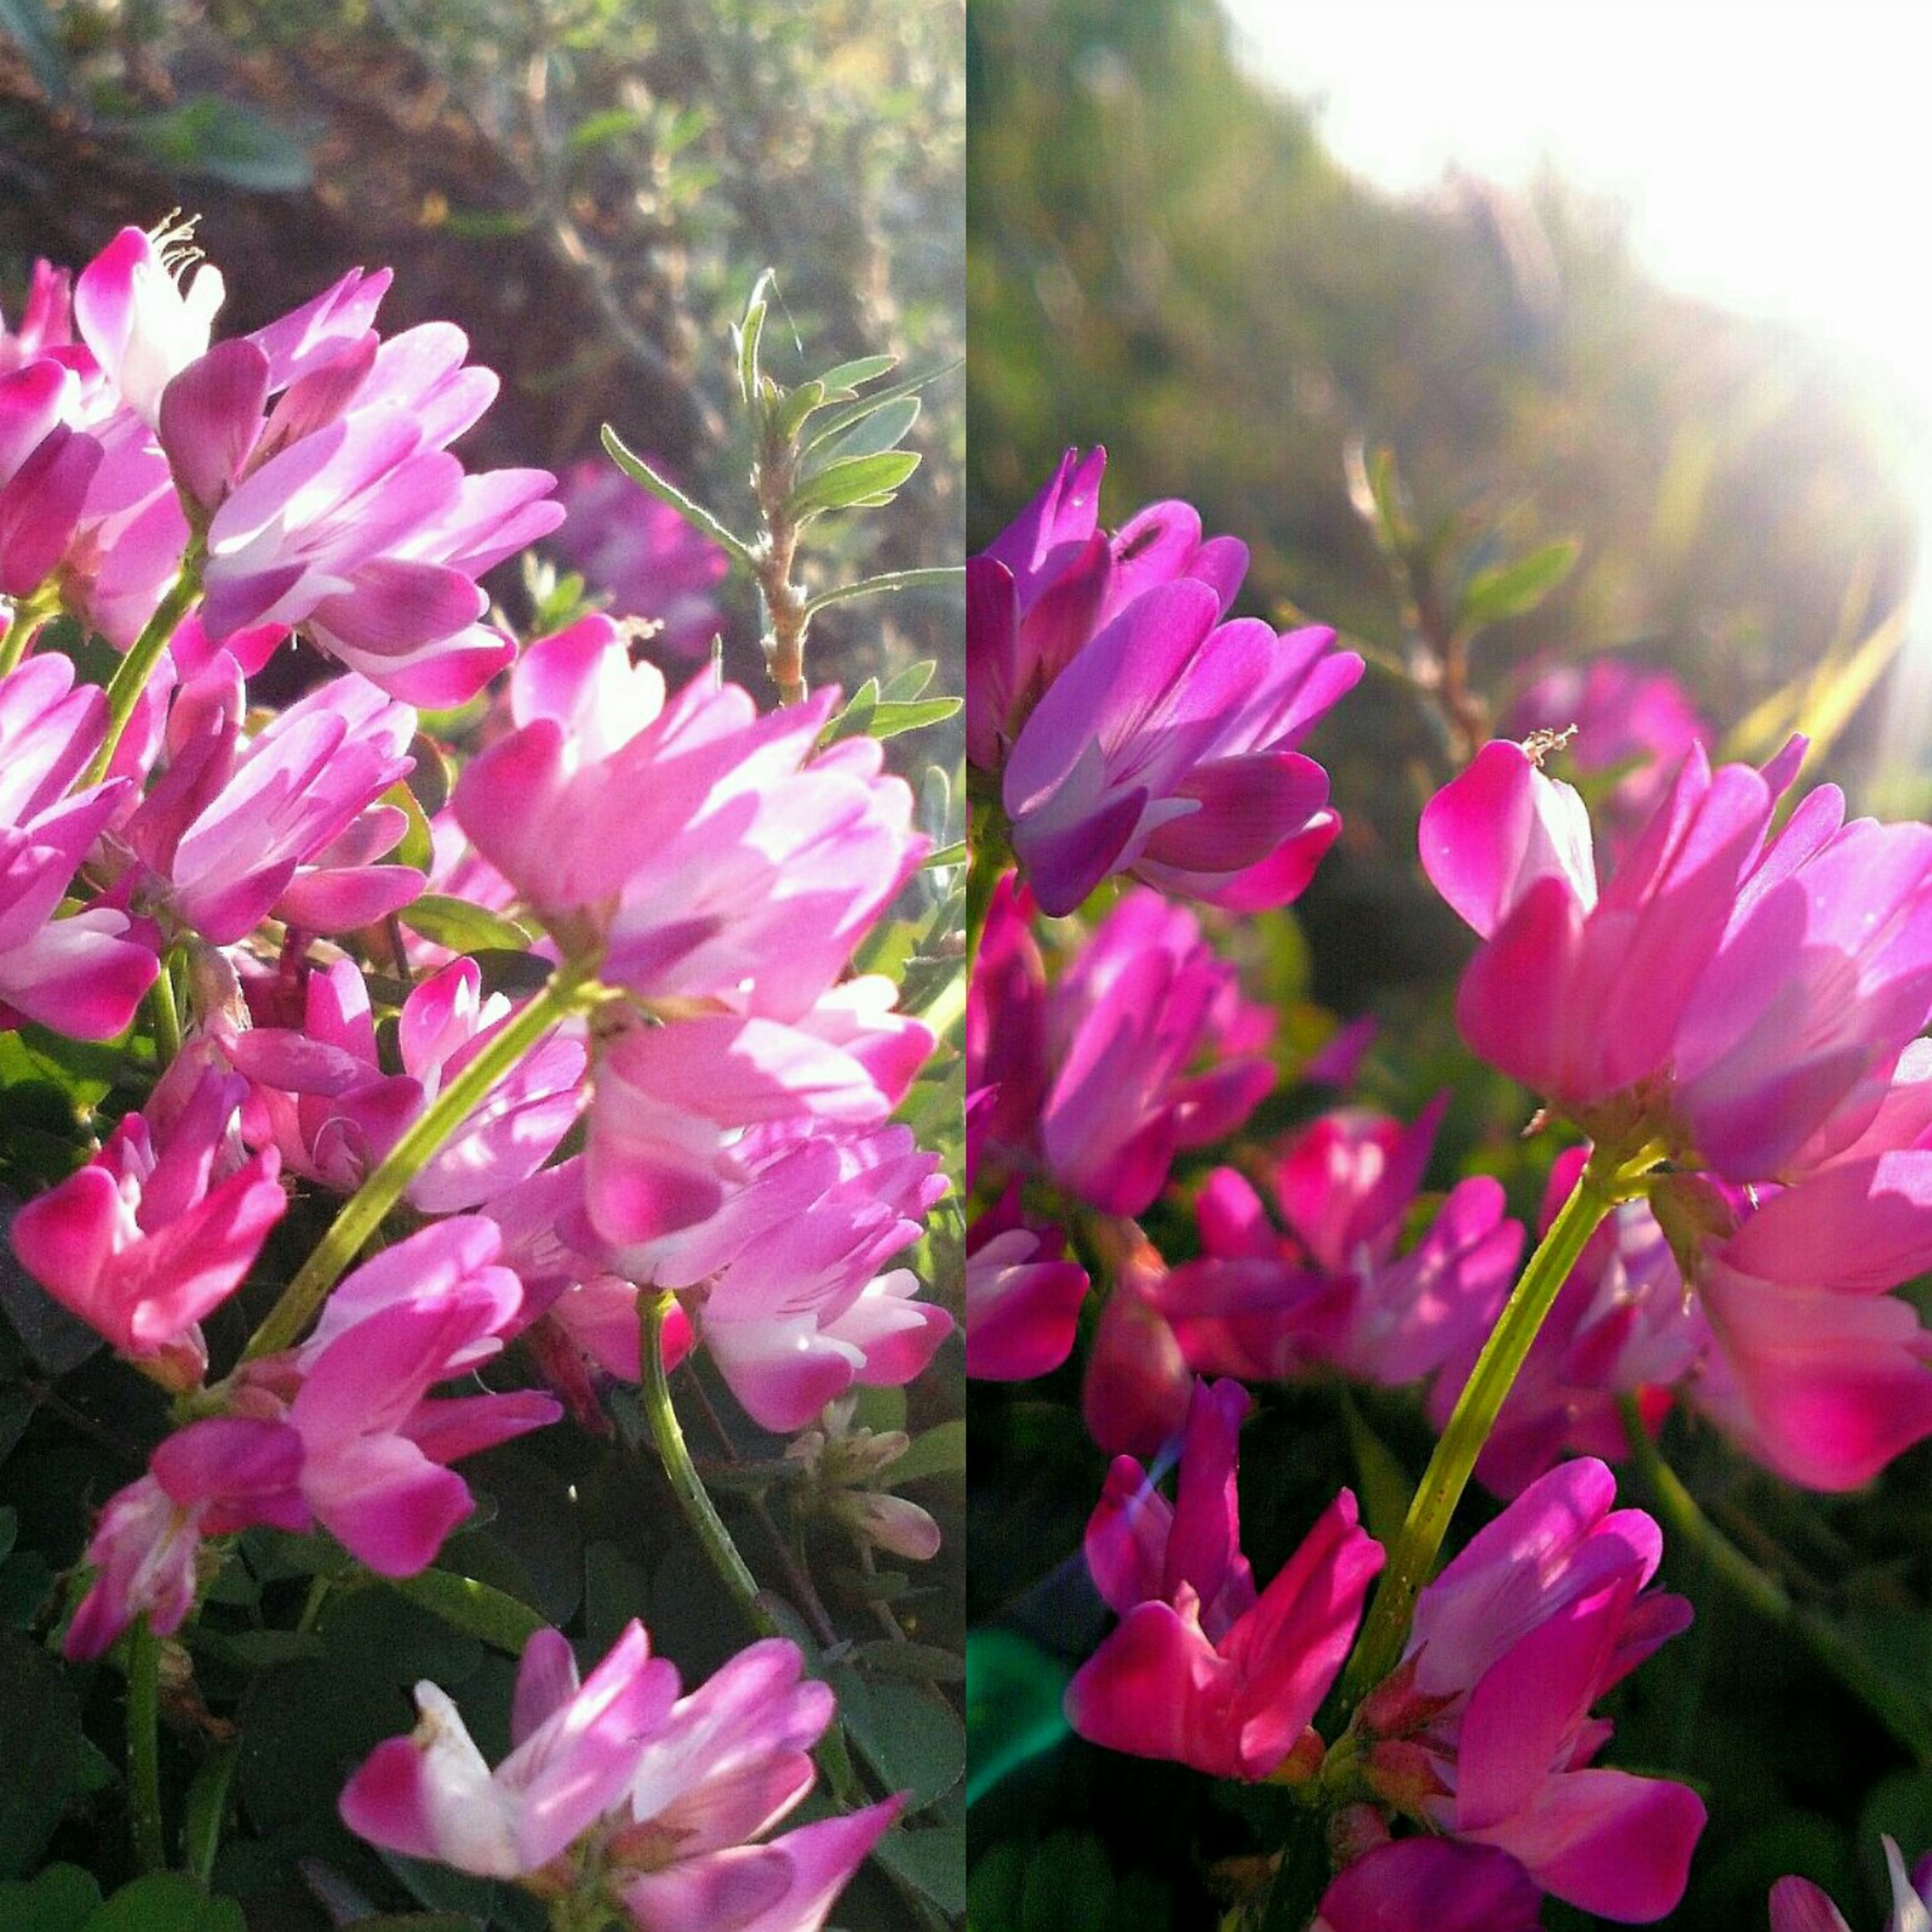 flower, growth, fragility, pink color, plant, nature, beauty in nature, petal, no people, freshness, insect, day, close-up, outdoors, flower head, blooming, animal themes